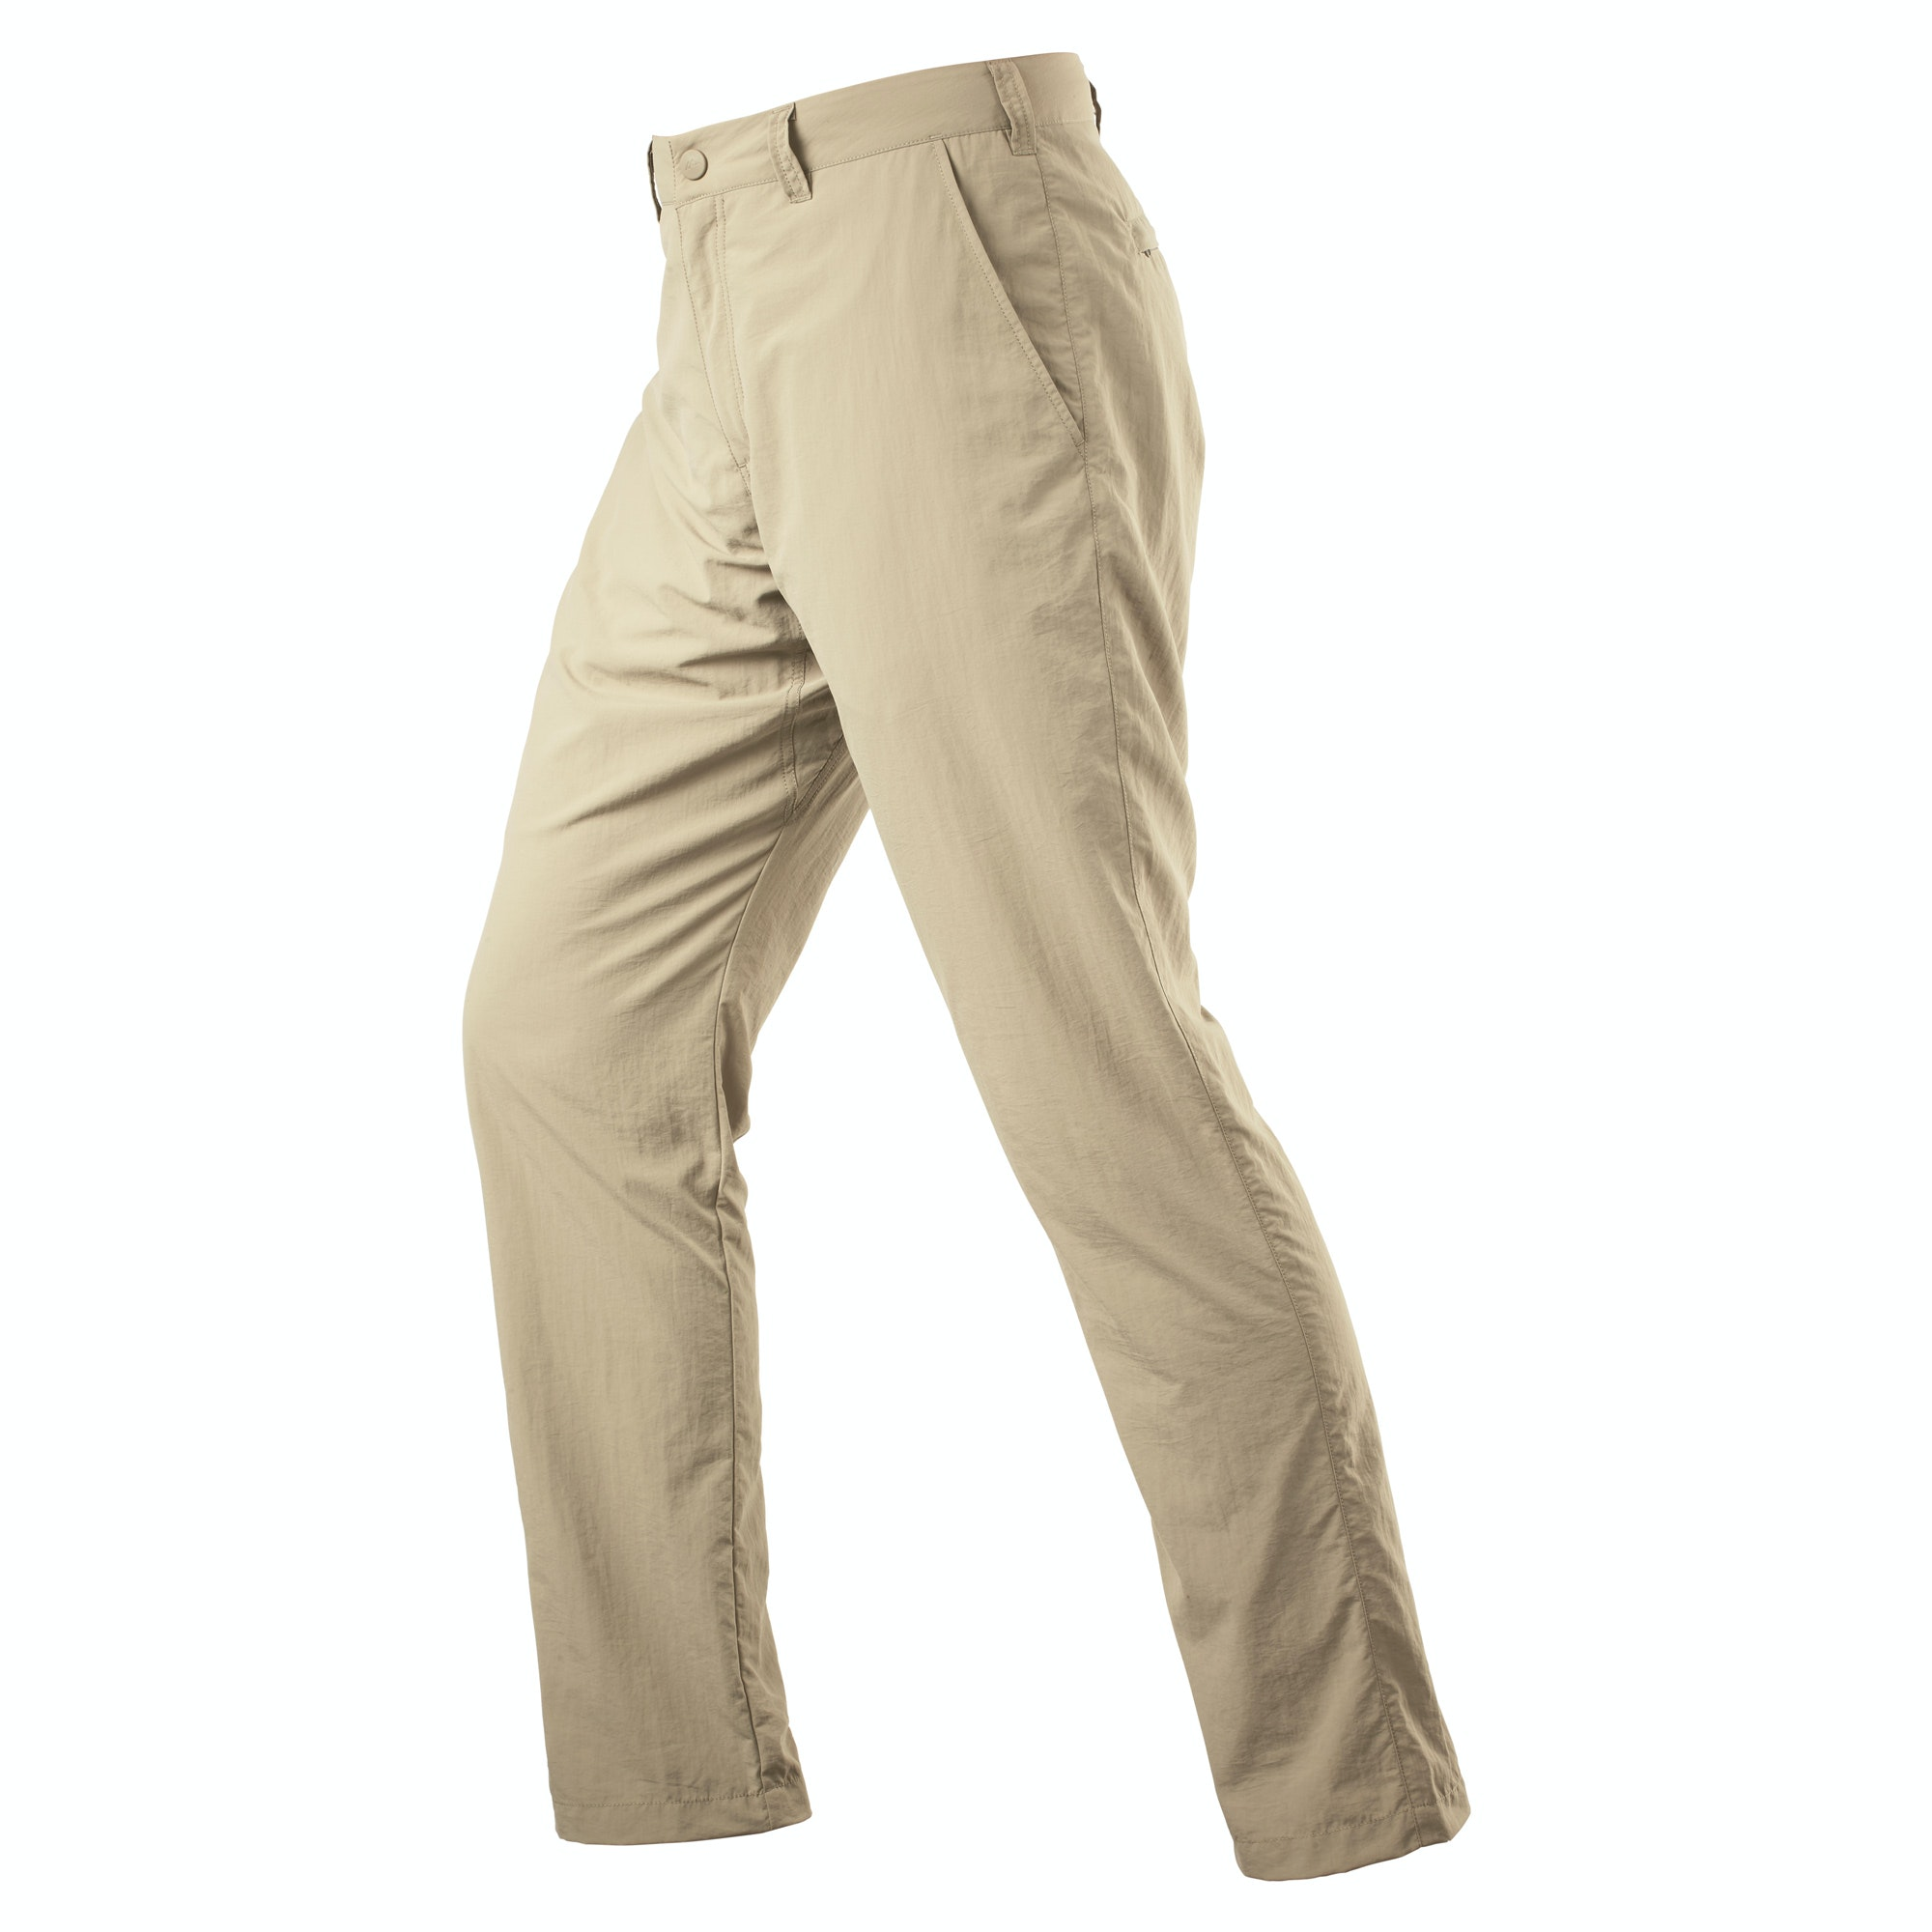 CQR Men's Tactical Pants Lightweight EDC Assault Cargo TLP/TLP/TXP by CQR. $ - $ $ 26 $ 32 98 Prime. FREE Shipping on eligible orders. Some sizes/colors are Prime eligible. out of 5 stars 8.